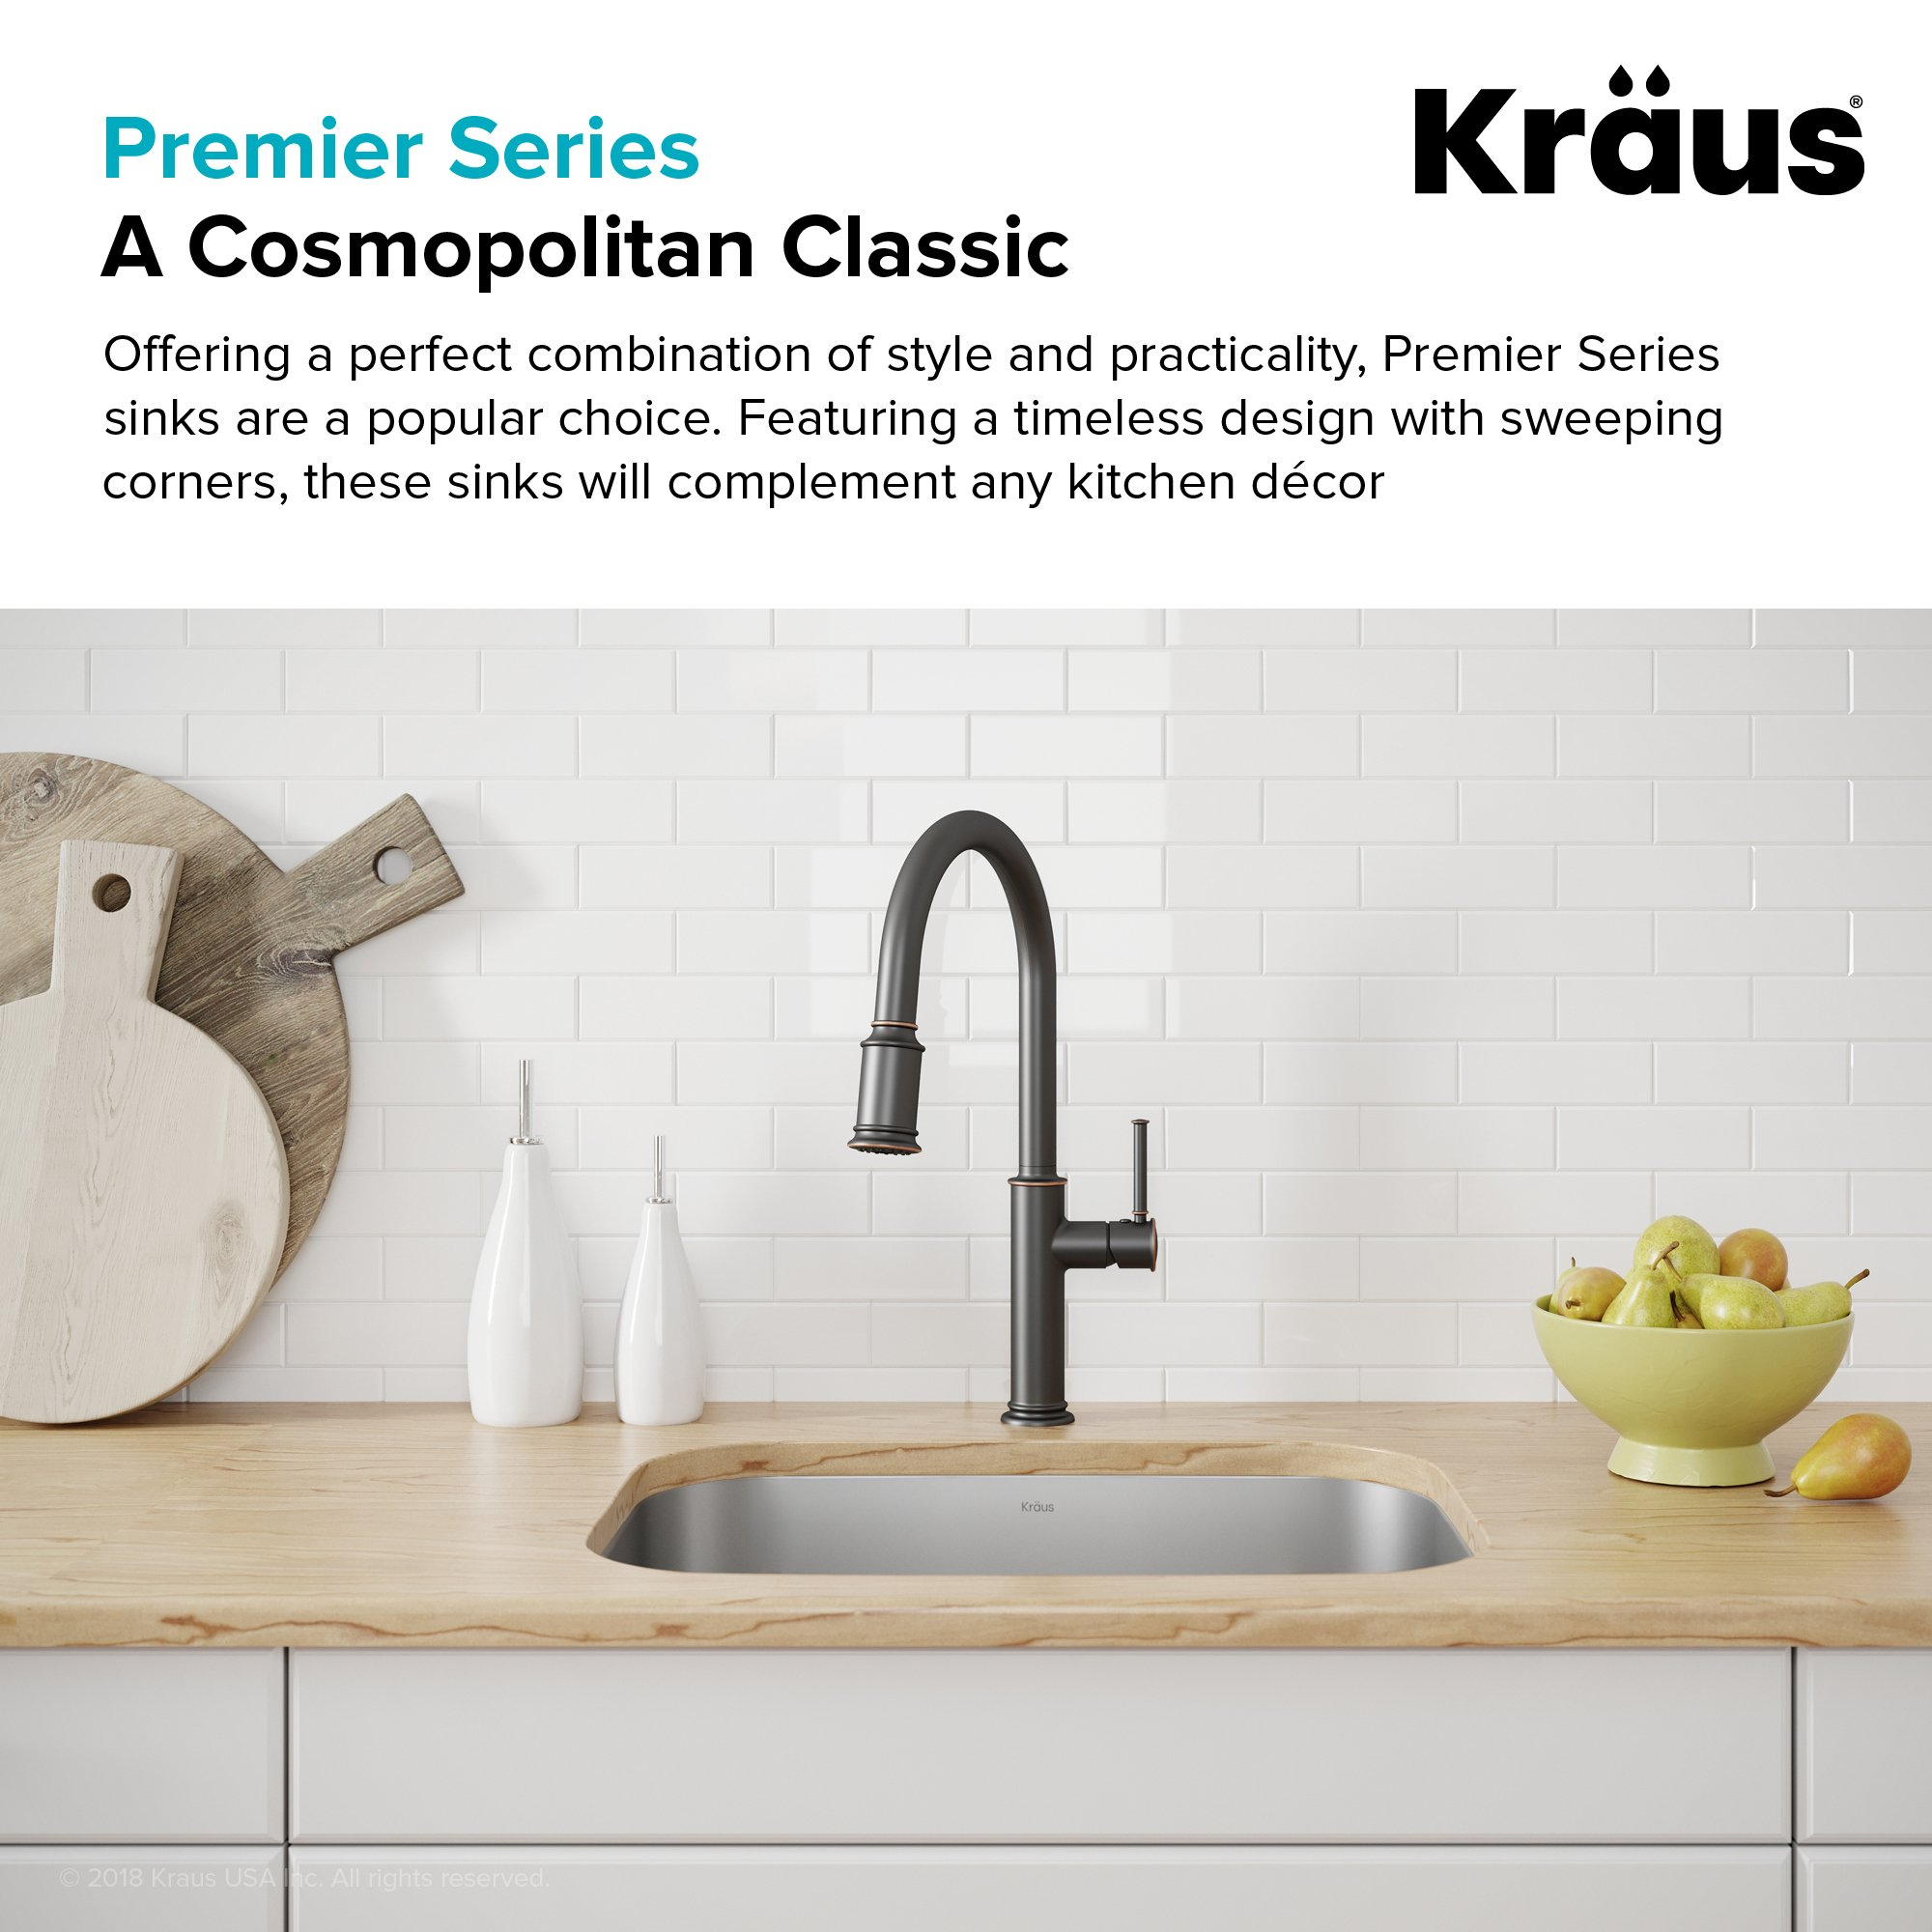 Kraus KBU12 23 inch Undermount Single Bowl 16 gauge Stainless Steel Kitchen Sink by Kraus (Image #4)